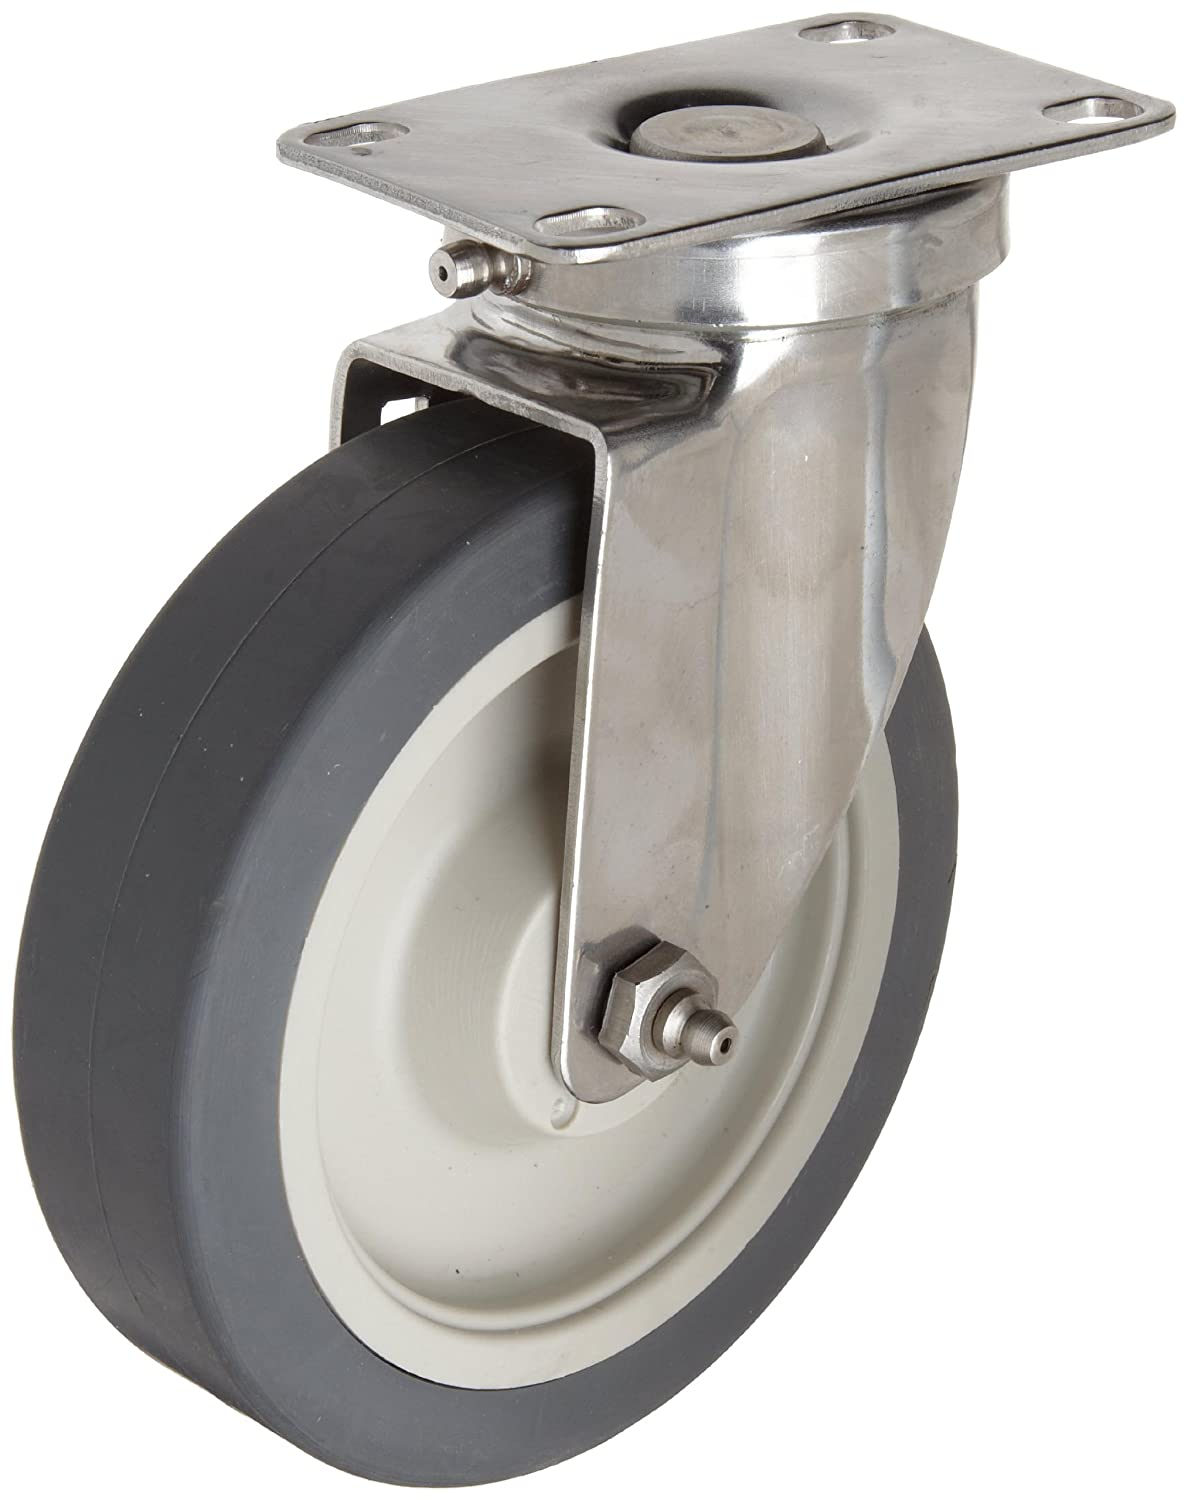 E.R. Wagner Americaster Plate Caster, Swivel, Dust Cover, TPR Rubber on Polyolefin Wheel, Delrin Bearing, 300 lbs Capacity, 6 Wheel Dia, 1-1/2 Wheel Width, 7-3/8 Mount Height, 4-1/8 Plate Length, 3-1/8 Plate Width by ER Wagner B003E7EGCE